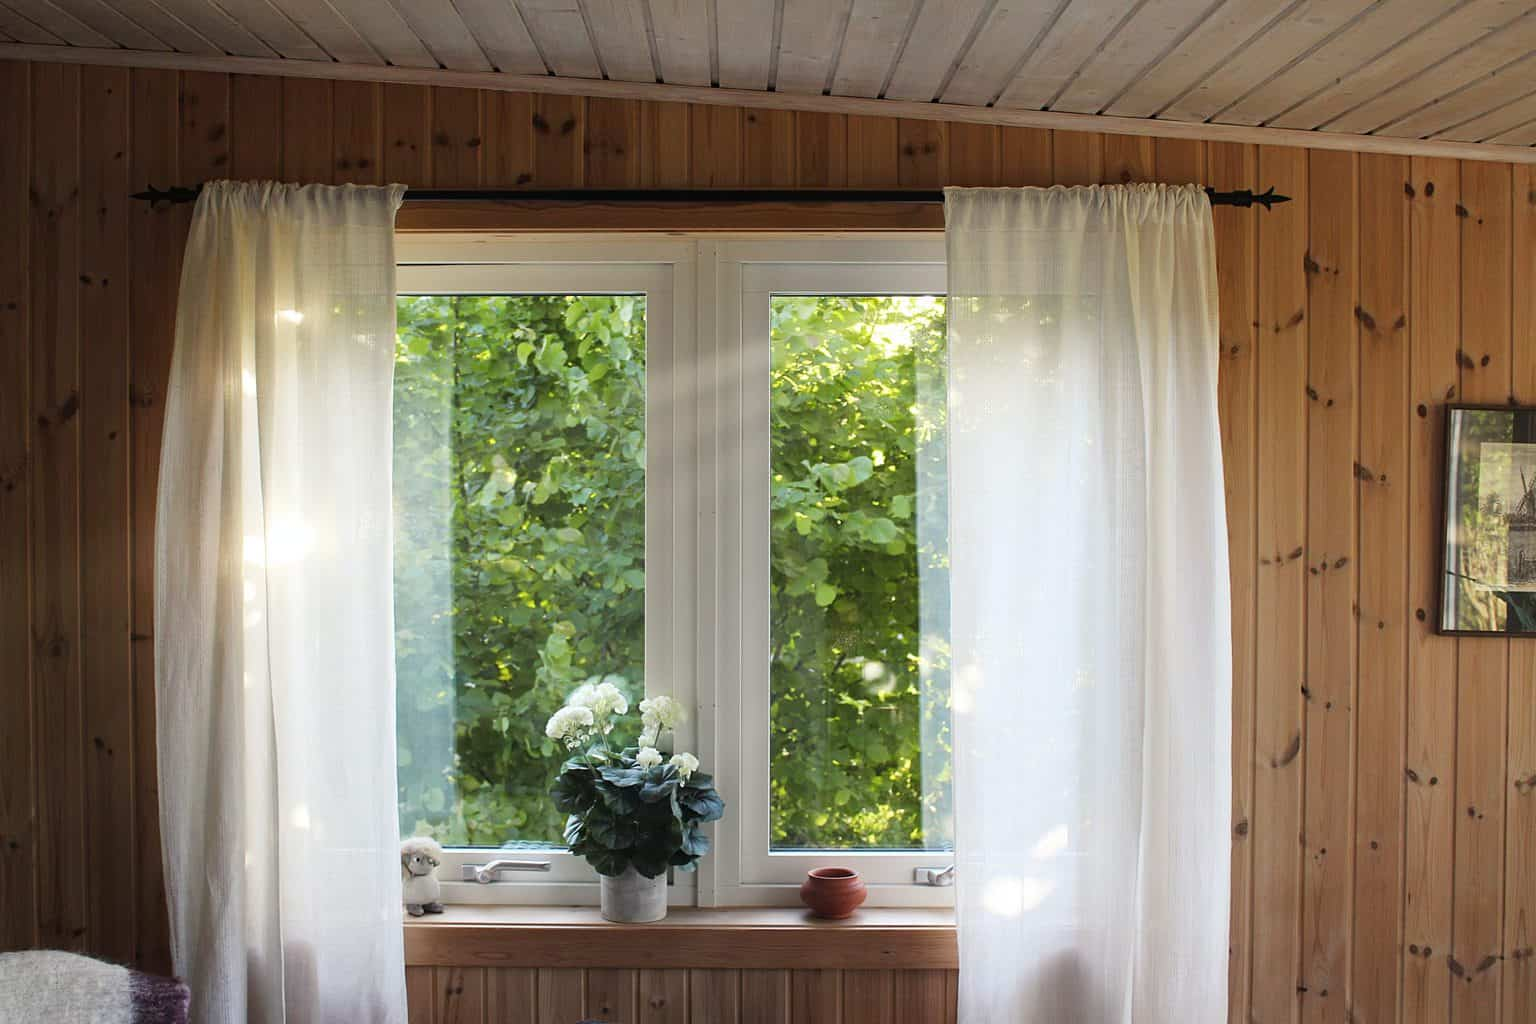 White curtains covering a white aluminum window frame